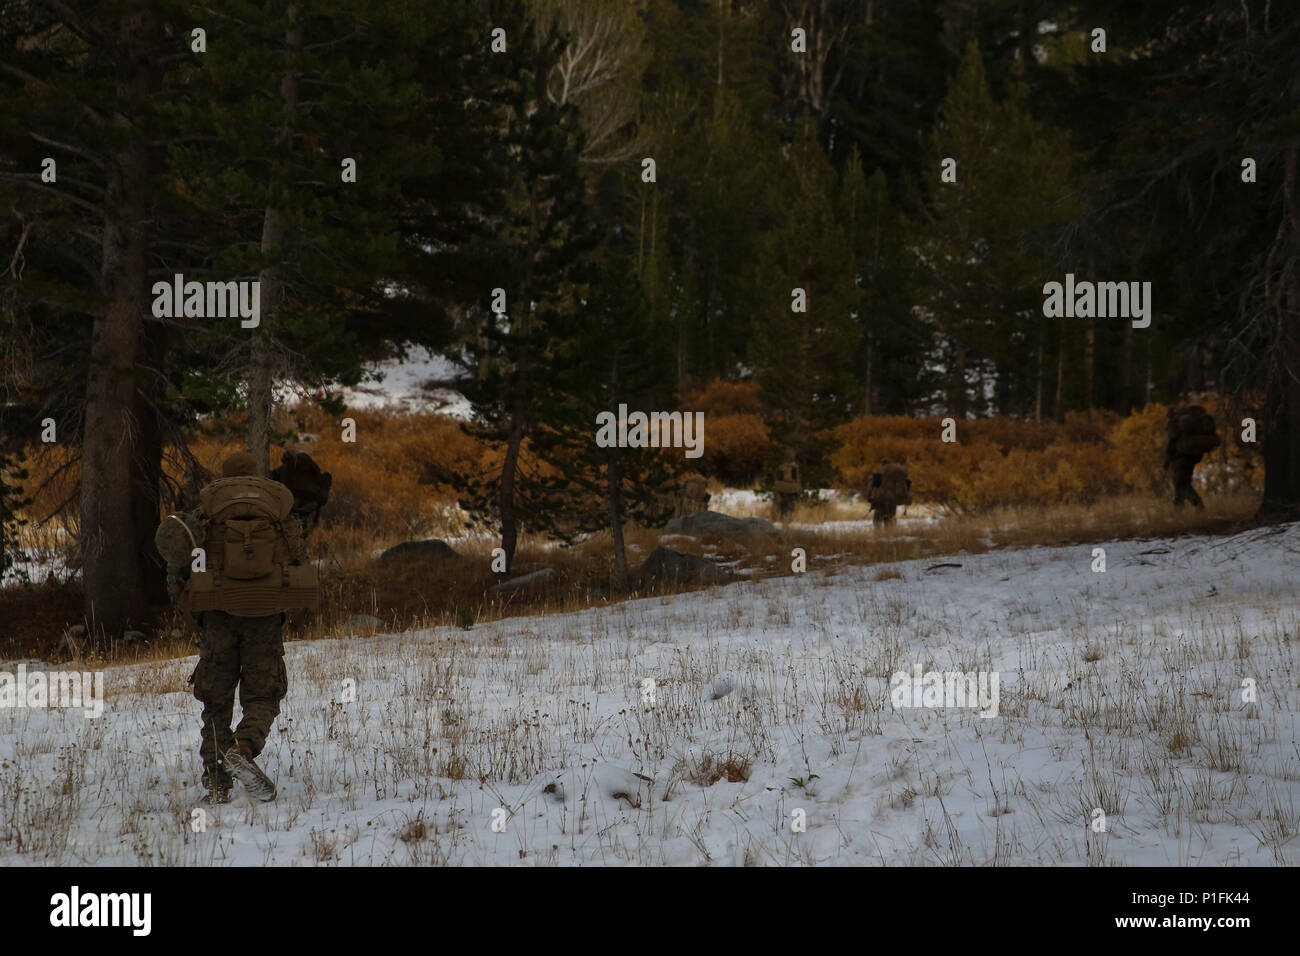 Marines with Company L, 3rd Battalion, 4th Marine Regiment, patrol through snow cover grounds during Mountain Warfare Training at Marine Corps Mountain Warfare Training Center, Bridgeport, Calif., Oct. 22, 2016. Throughout the battalion's culminating training event, Marines had to contend with the unpredictable weather of the Sierra-Nevada Mountain Range. Stock Photo